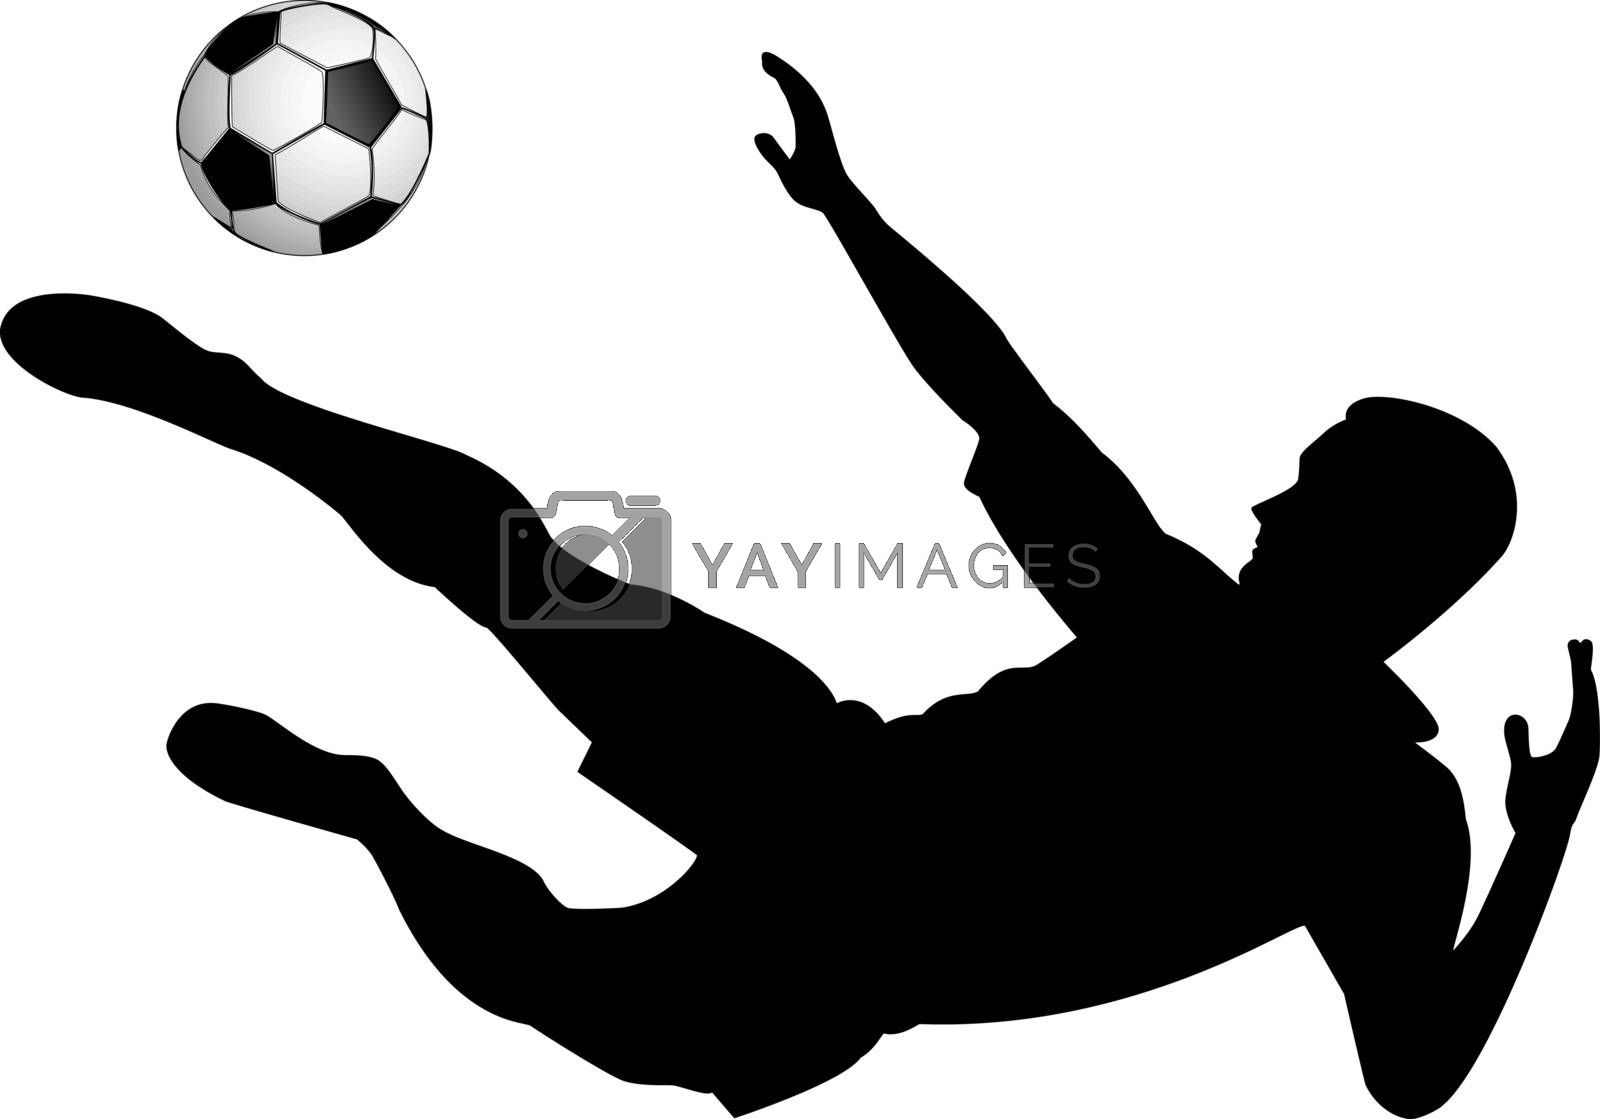 Silhouette of soccer player with a ball on a white background.